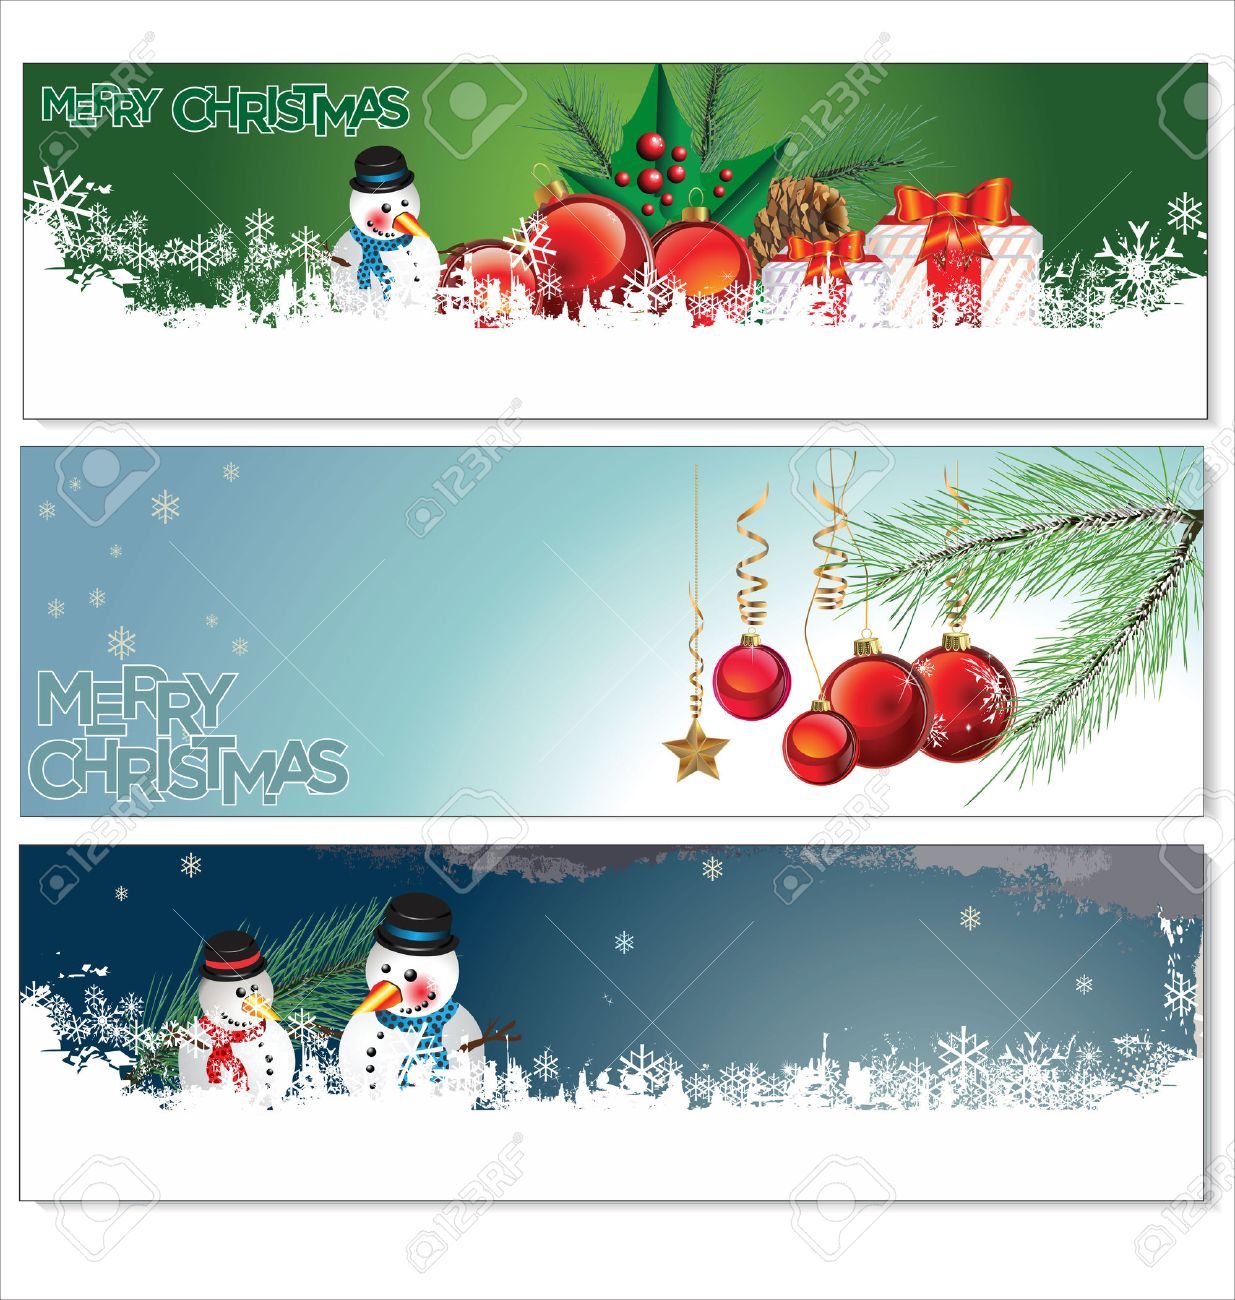 Merry Christmas Banners Set Design Royalty Free Cliparts, Vectors ...